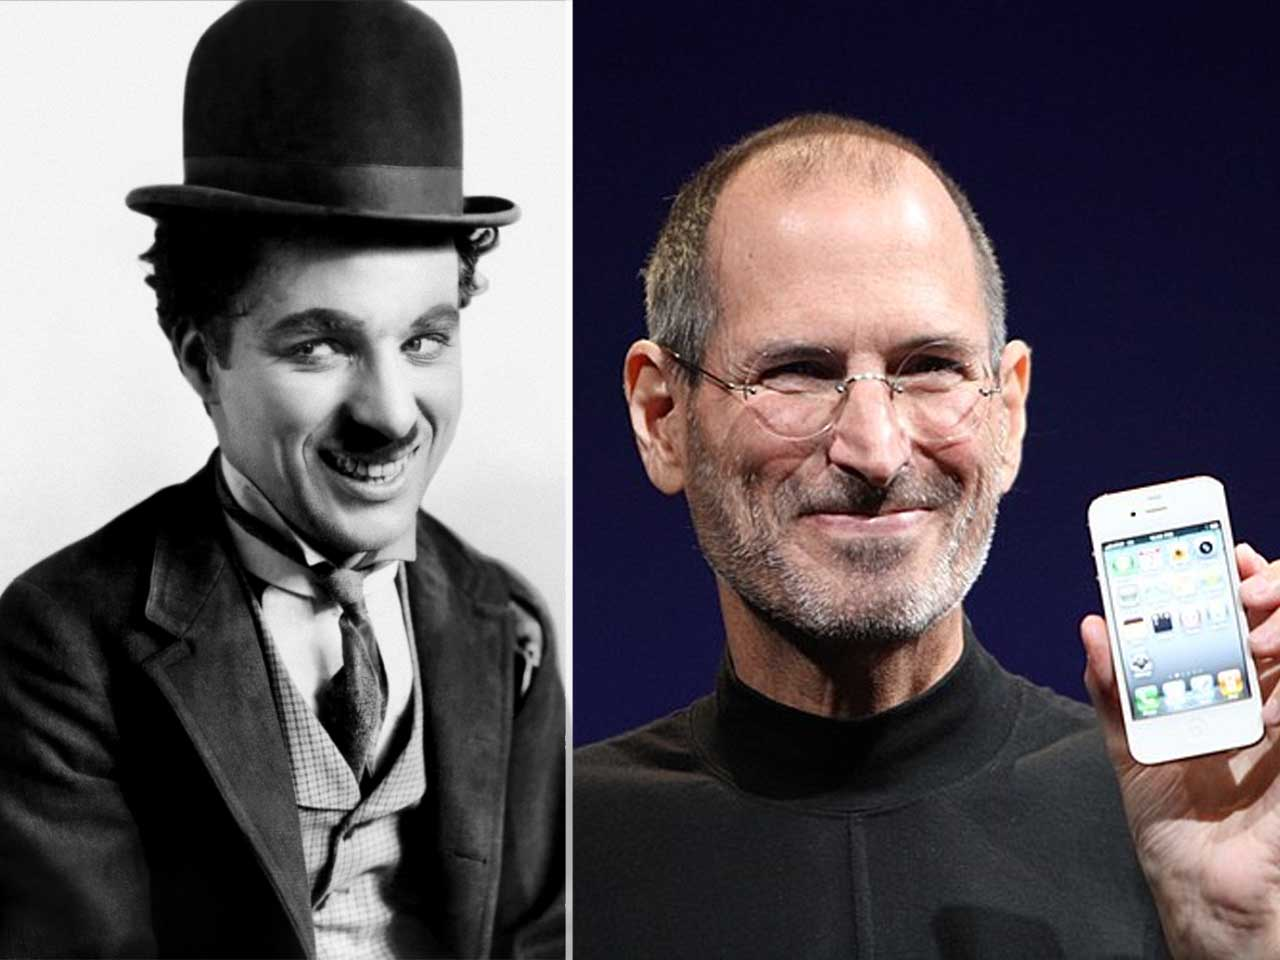 Charlie Chaplin died in 1977, the same year Apple was incorporated.